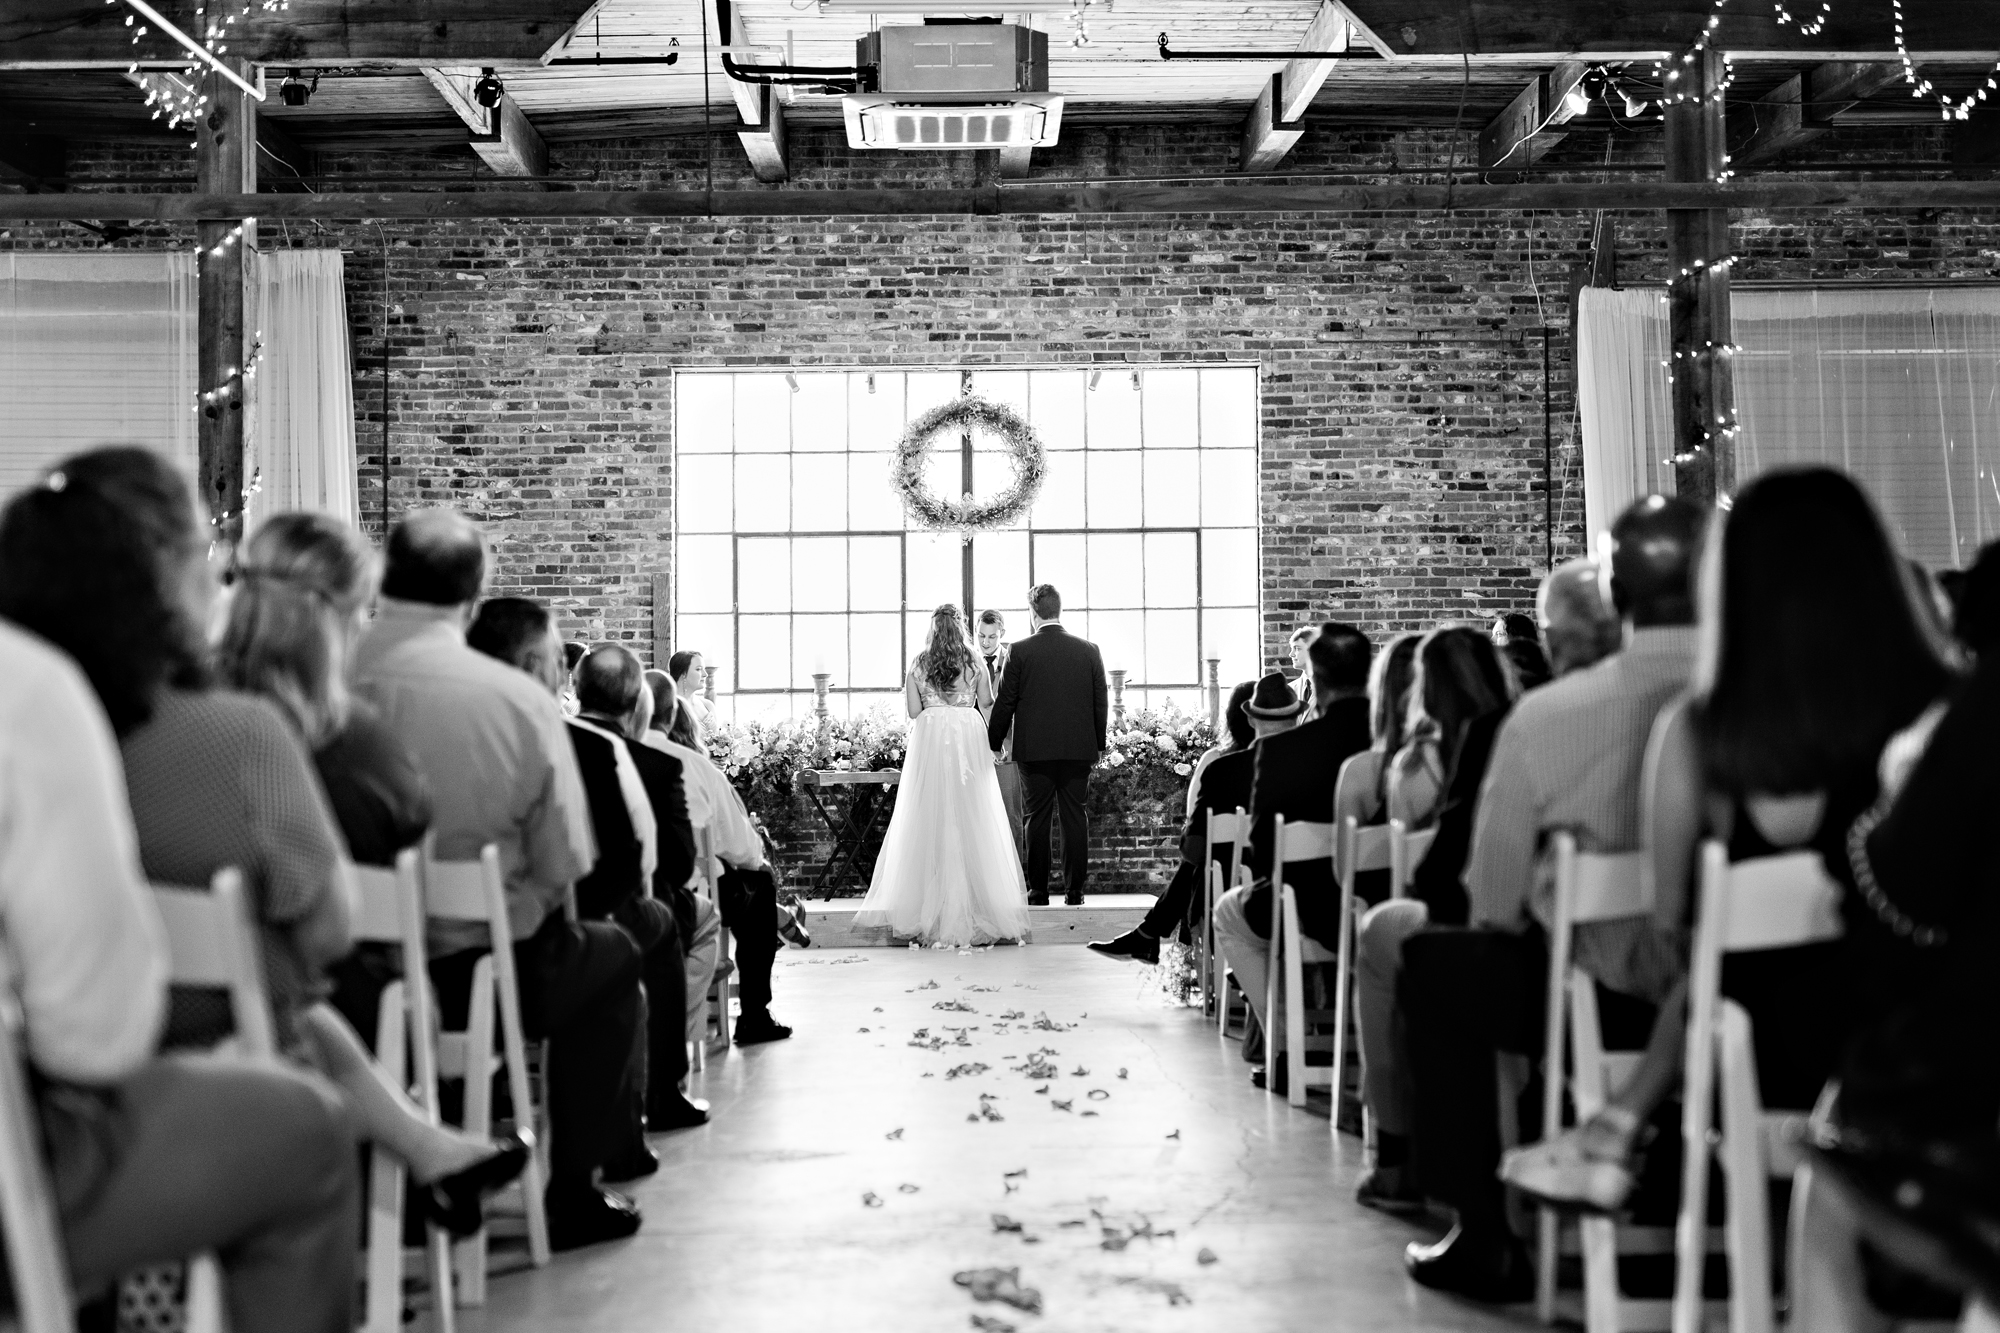 Eclectic-Alabama-Wedding-Photographers-Nick-Drollette-Photography-106.jpg